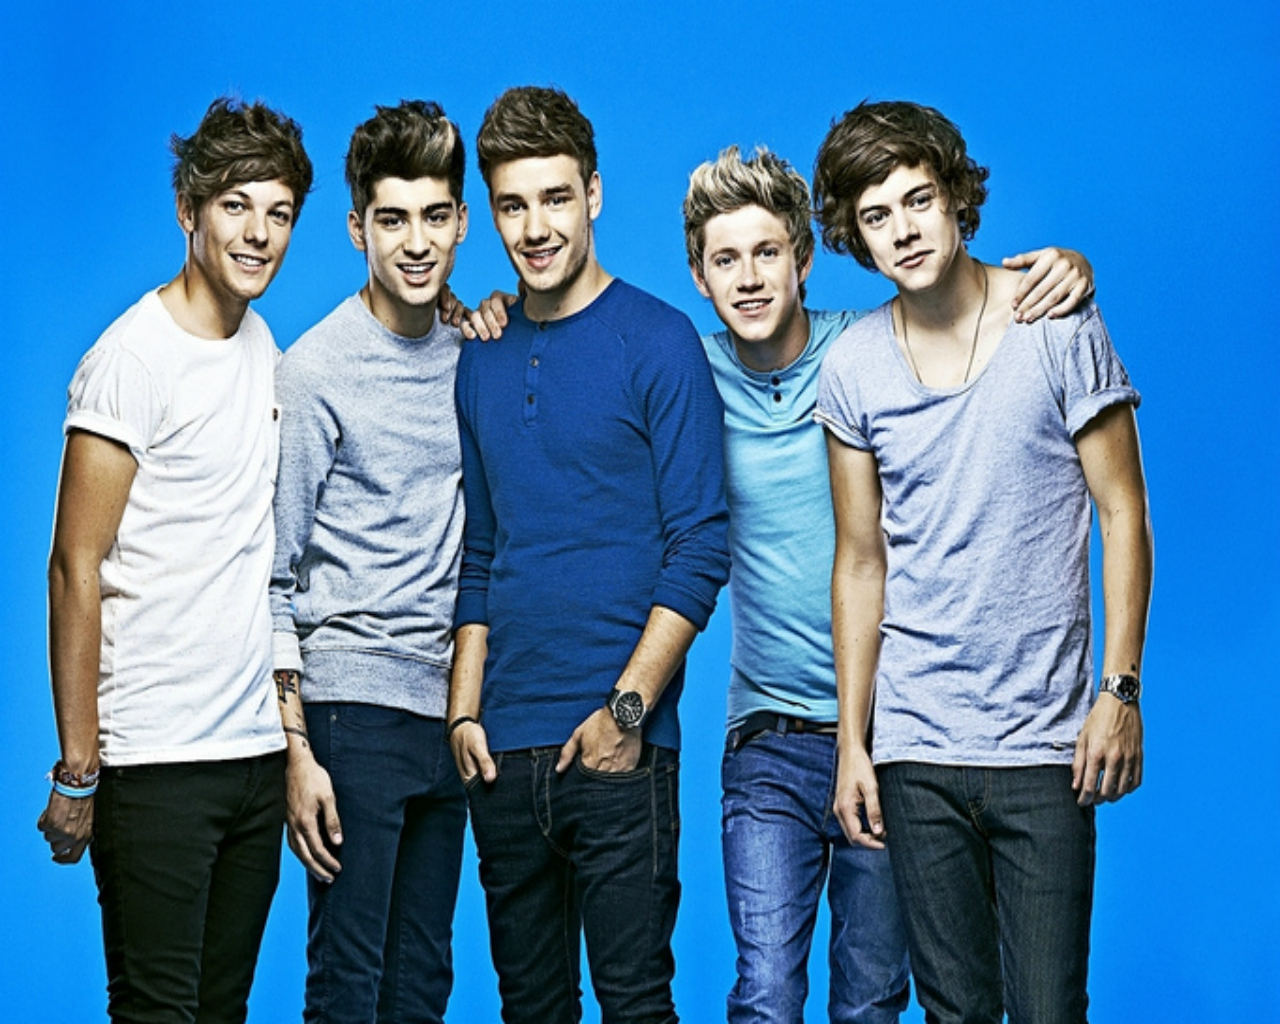 Sharon Sel Images 1D HD Wallpaper And Background Photos